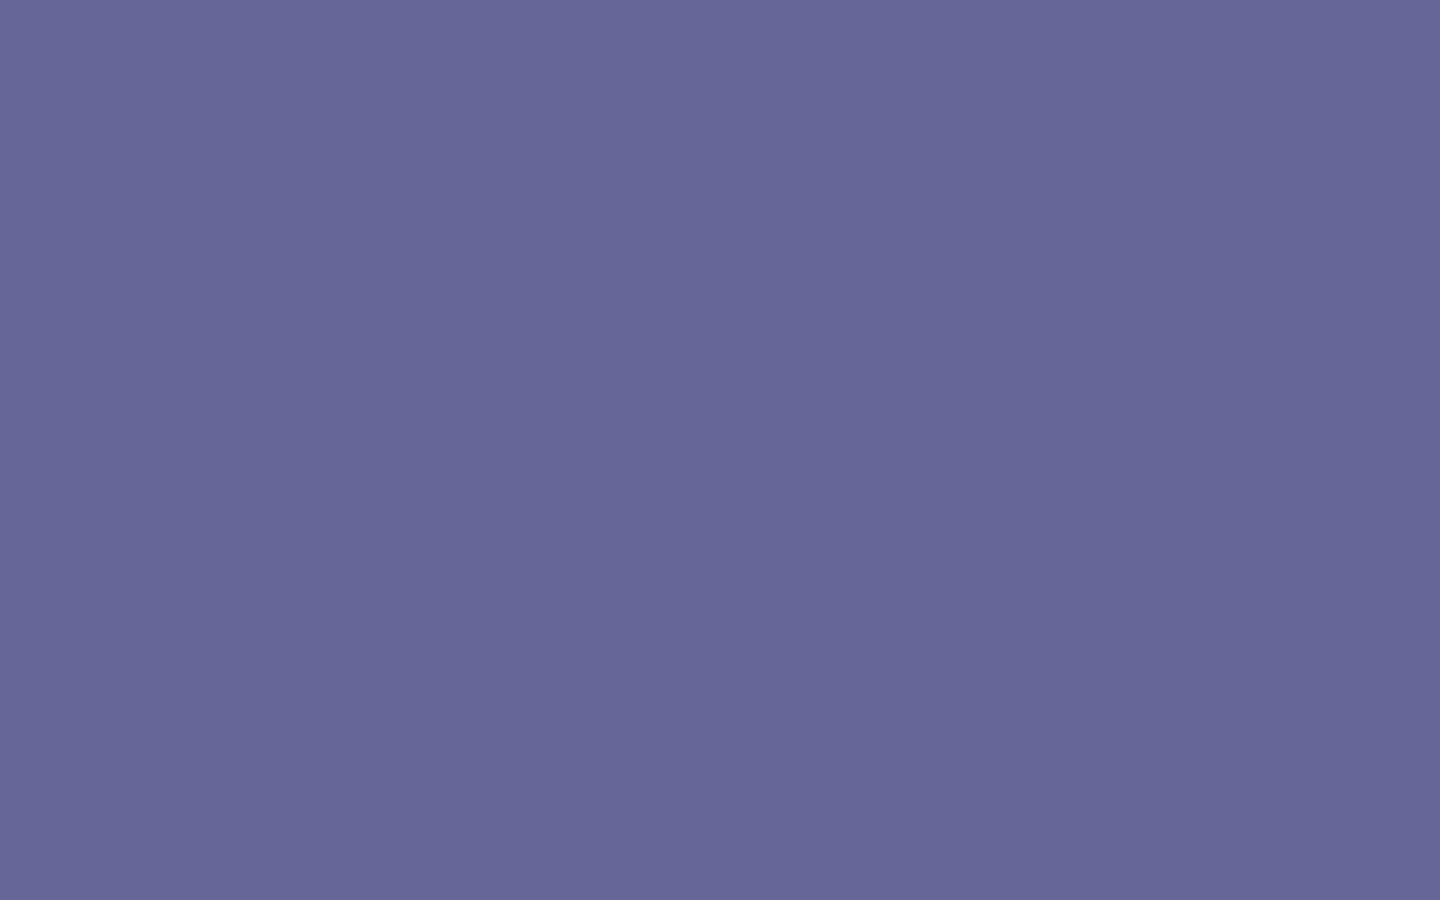 1440x900 Dark Blue-gray Solid Color Background